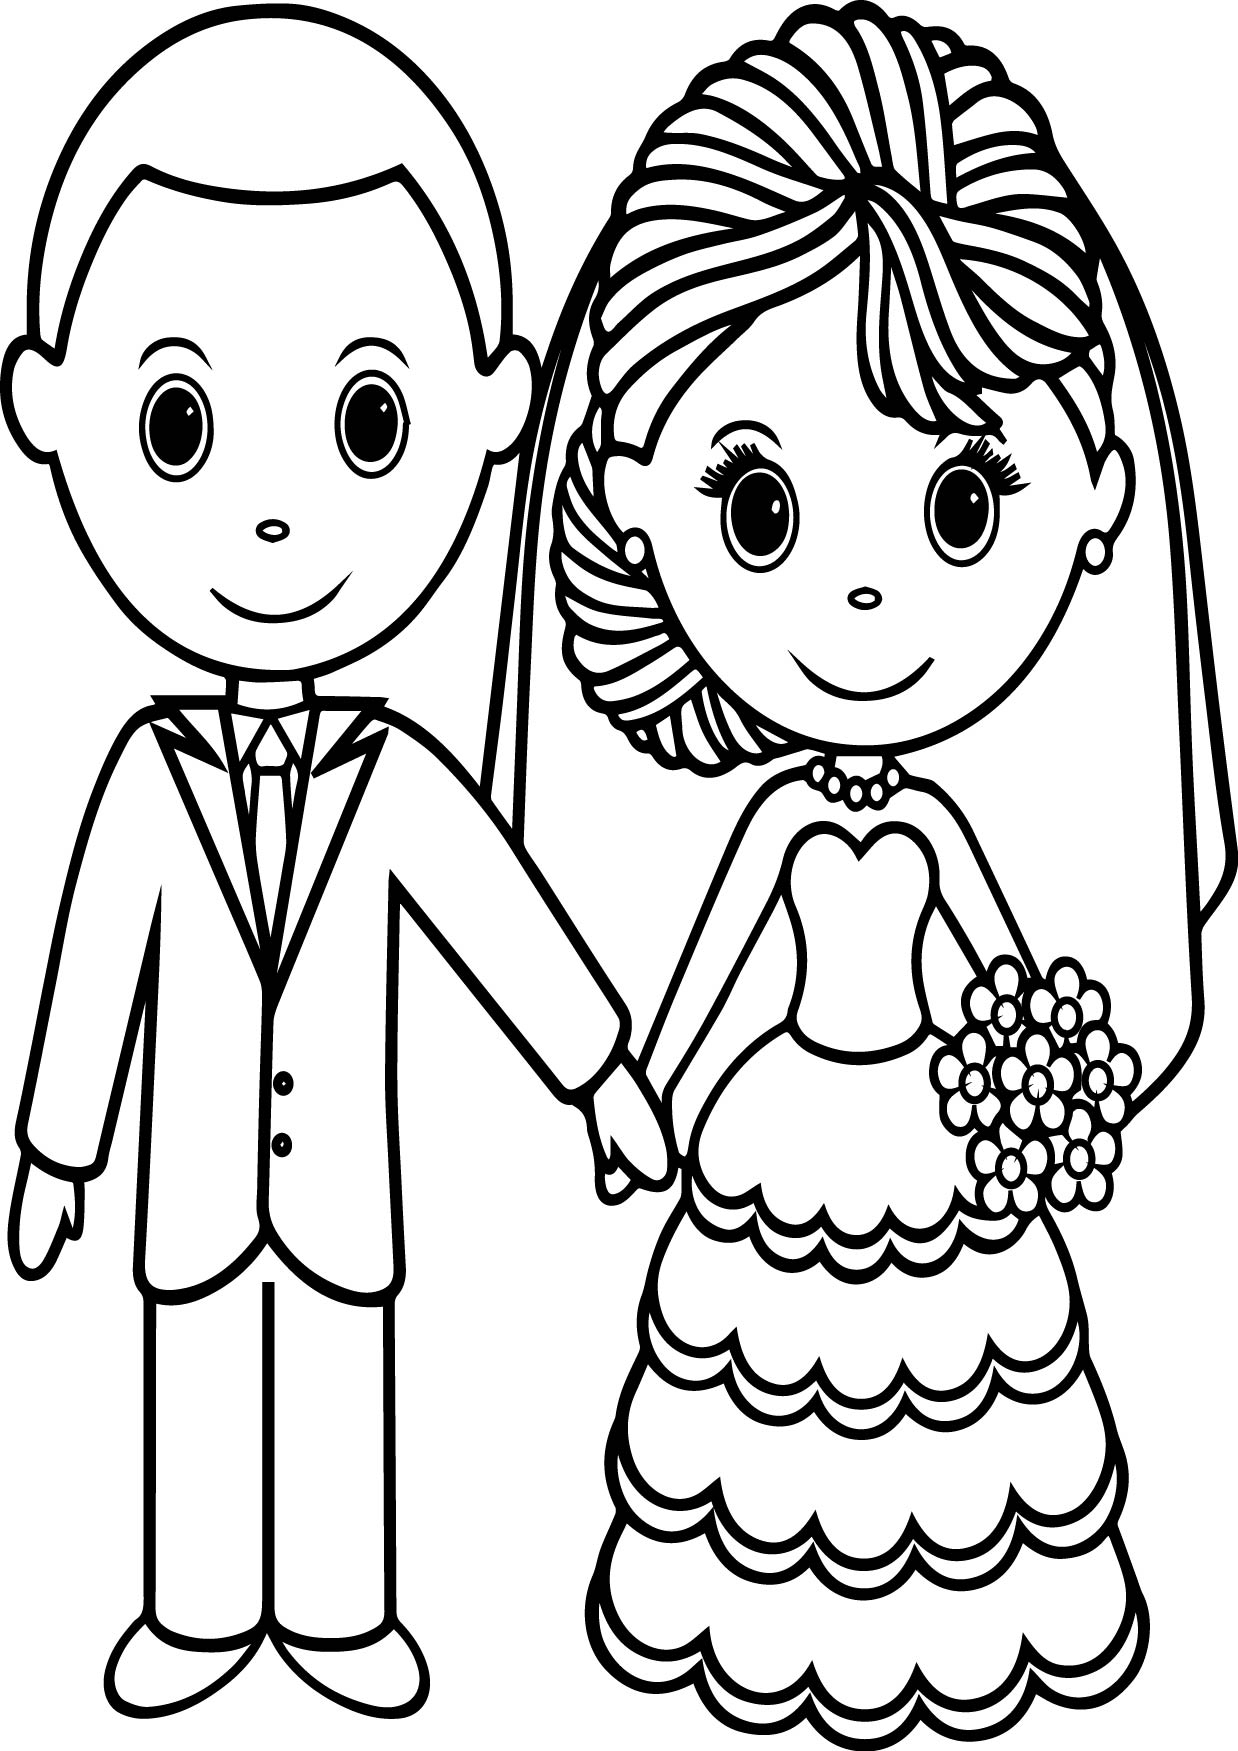 wedding coloring pages free personalized printable bride groom wedding party favor coloring wedding pages free